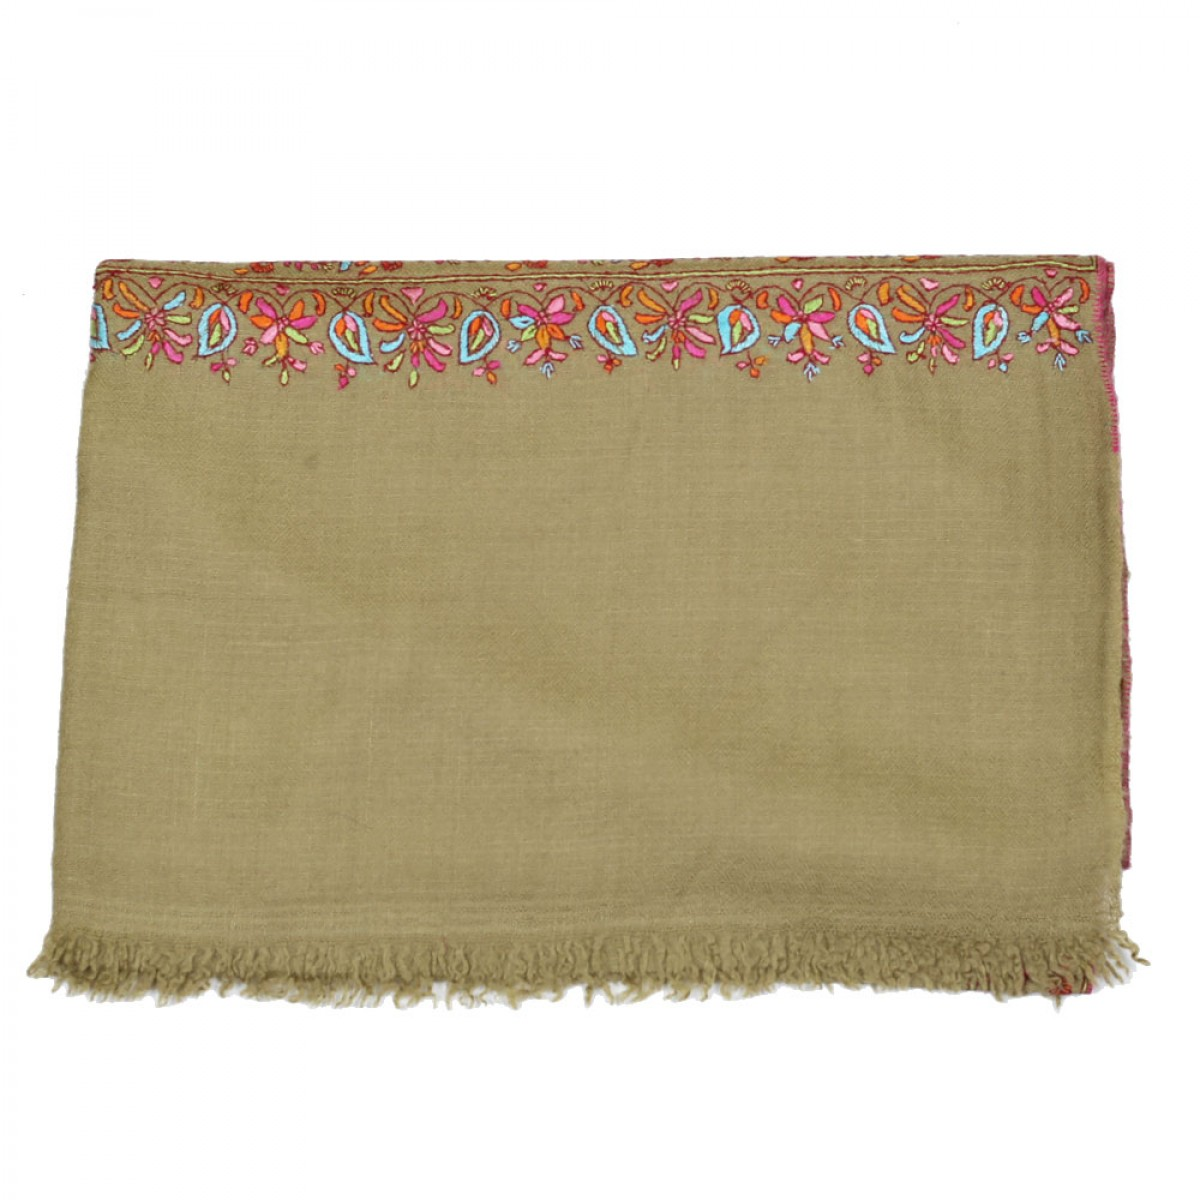 Embroidery Handloom Pashmina - Olive